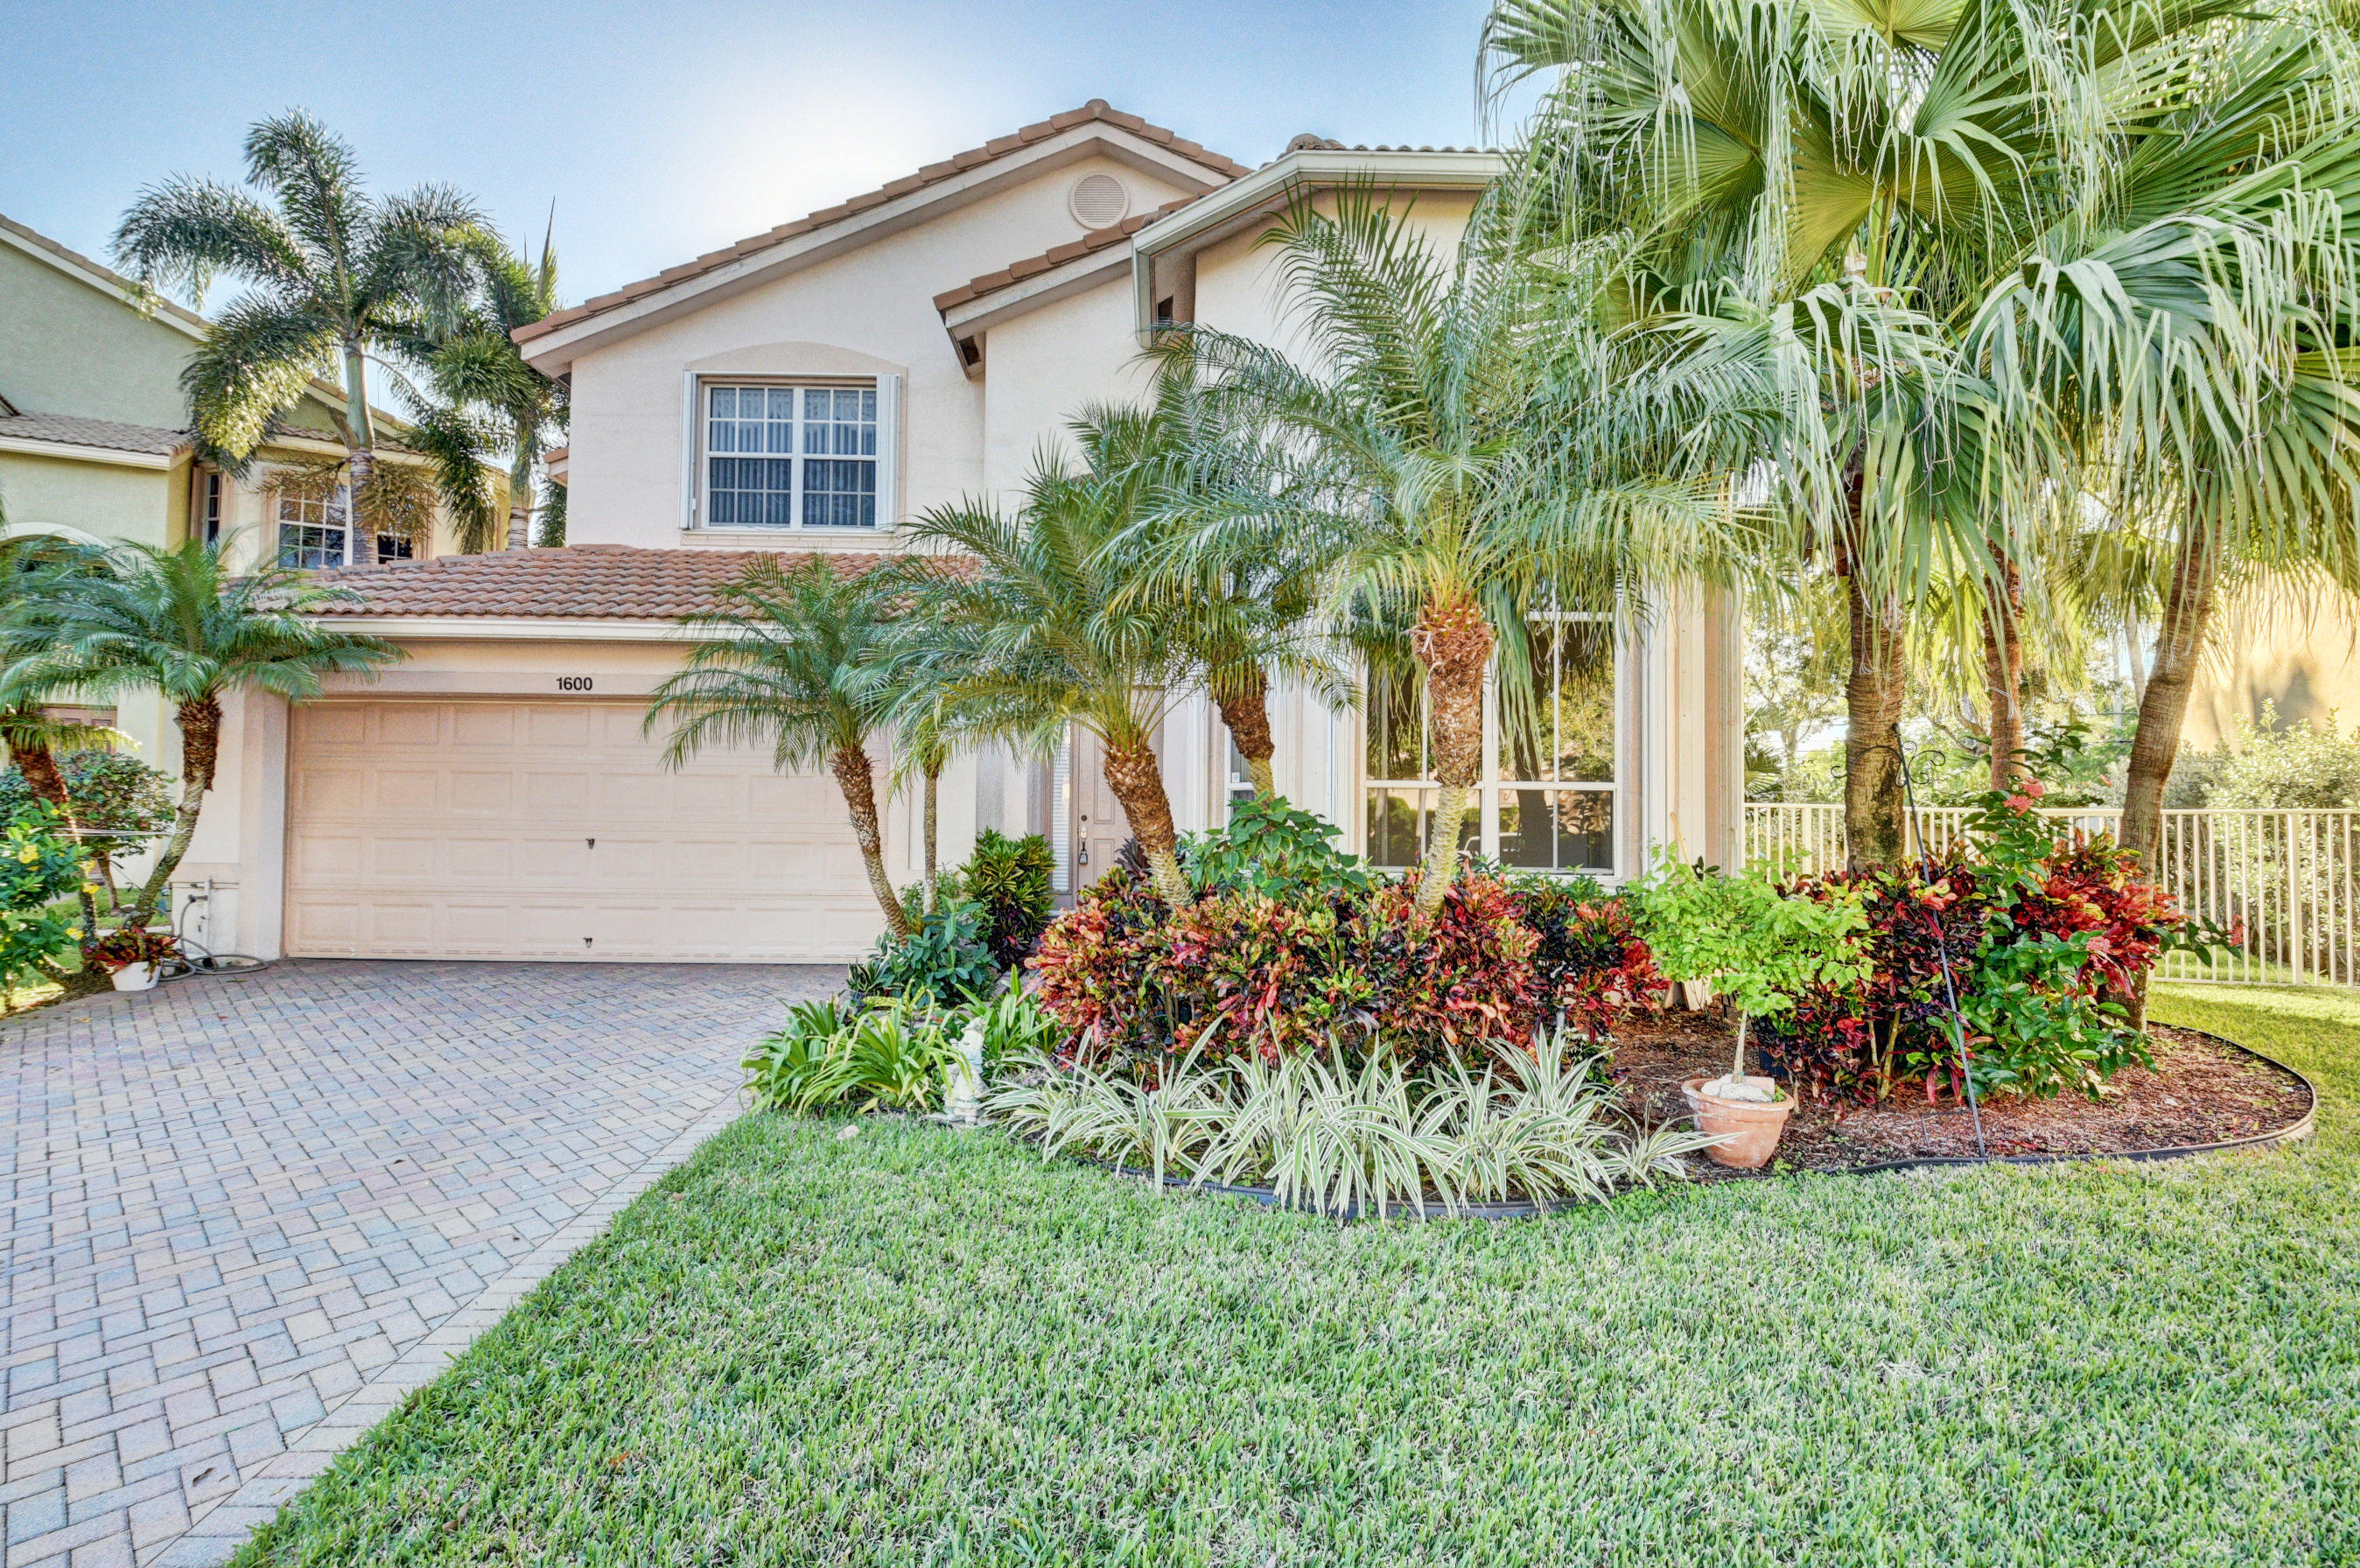 Home for sale in The Colony Delray Beach Florida